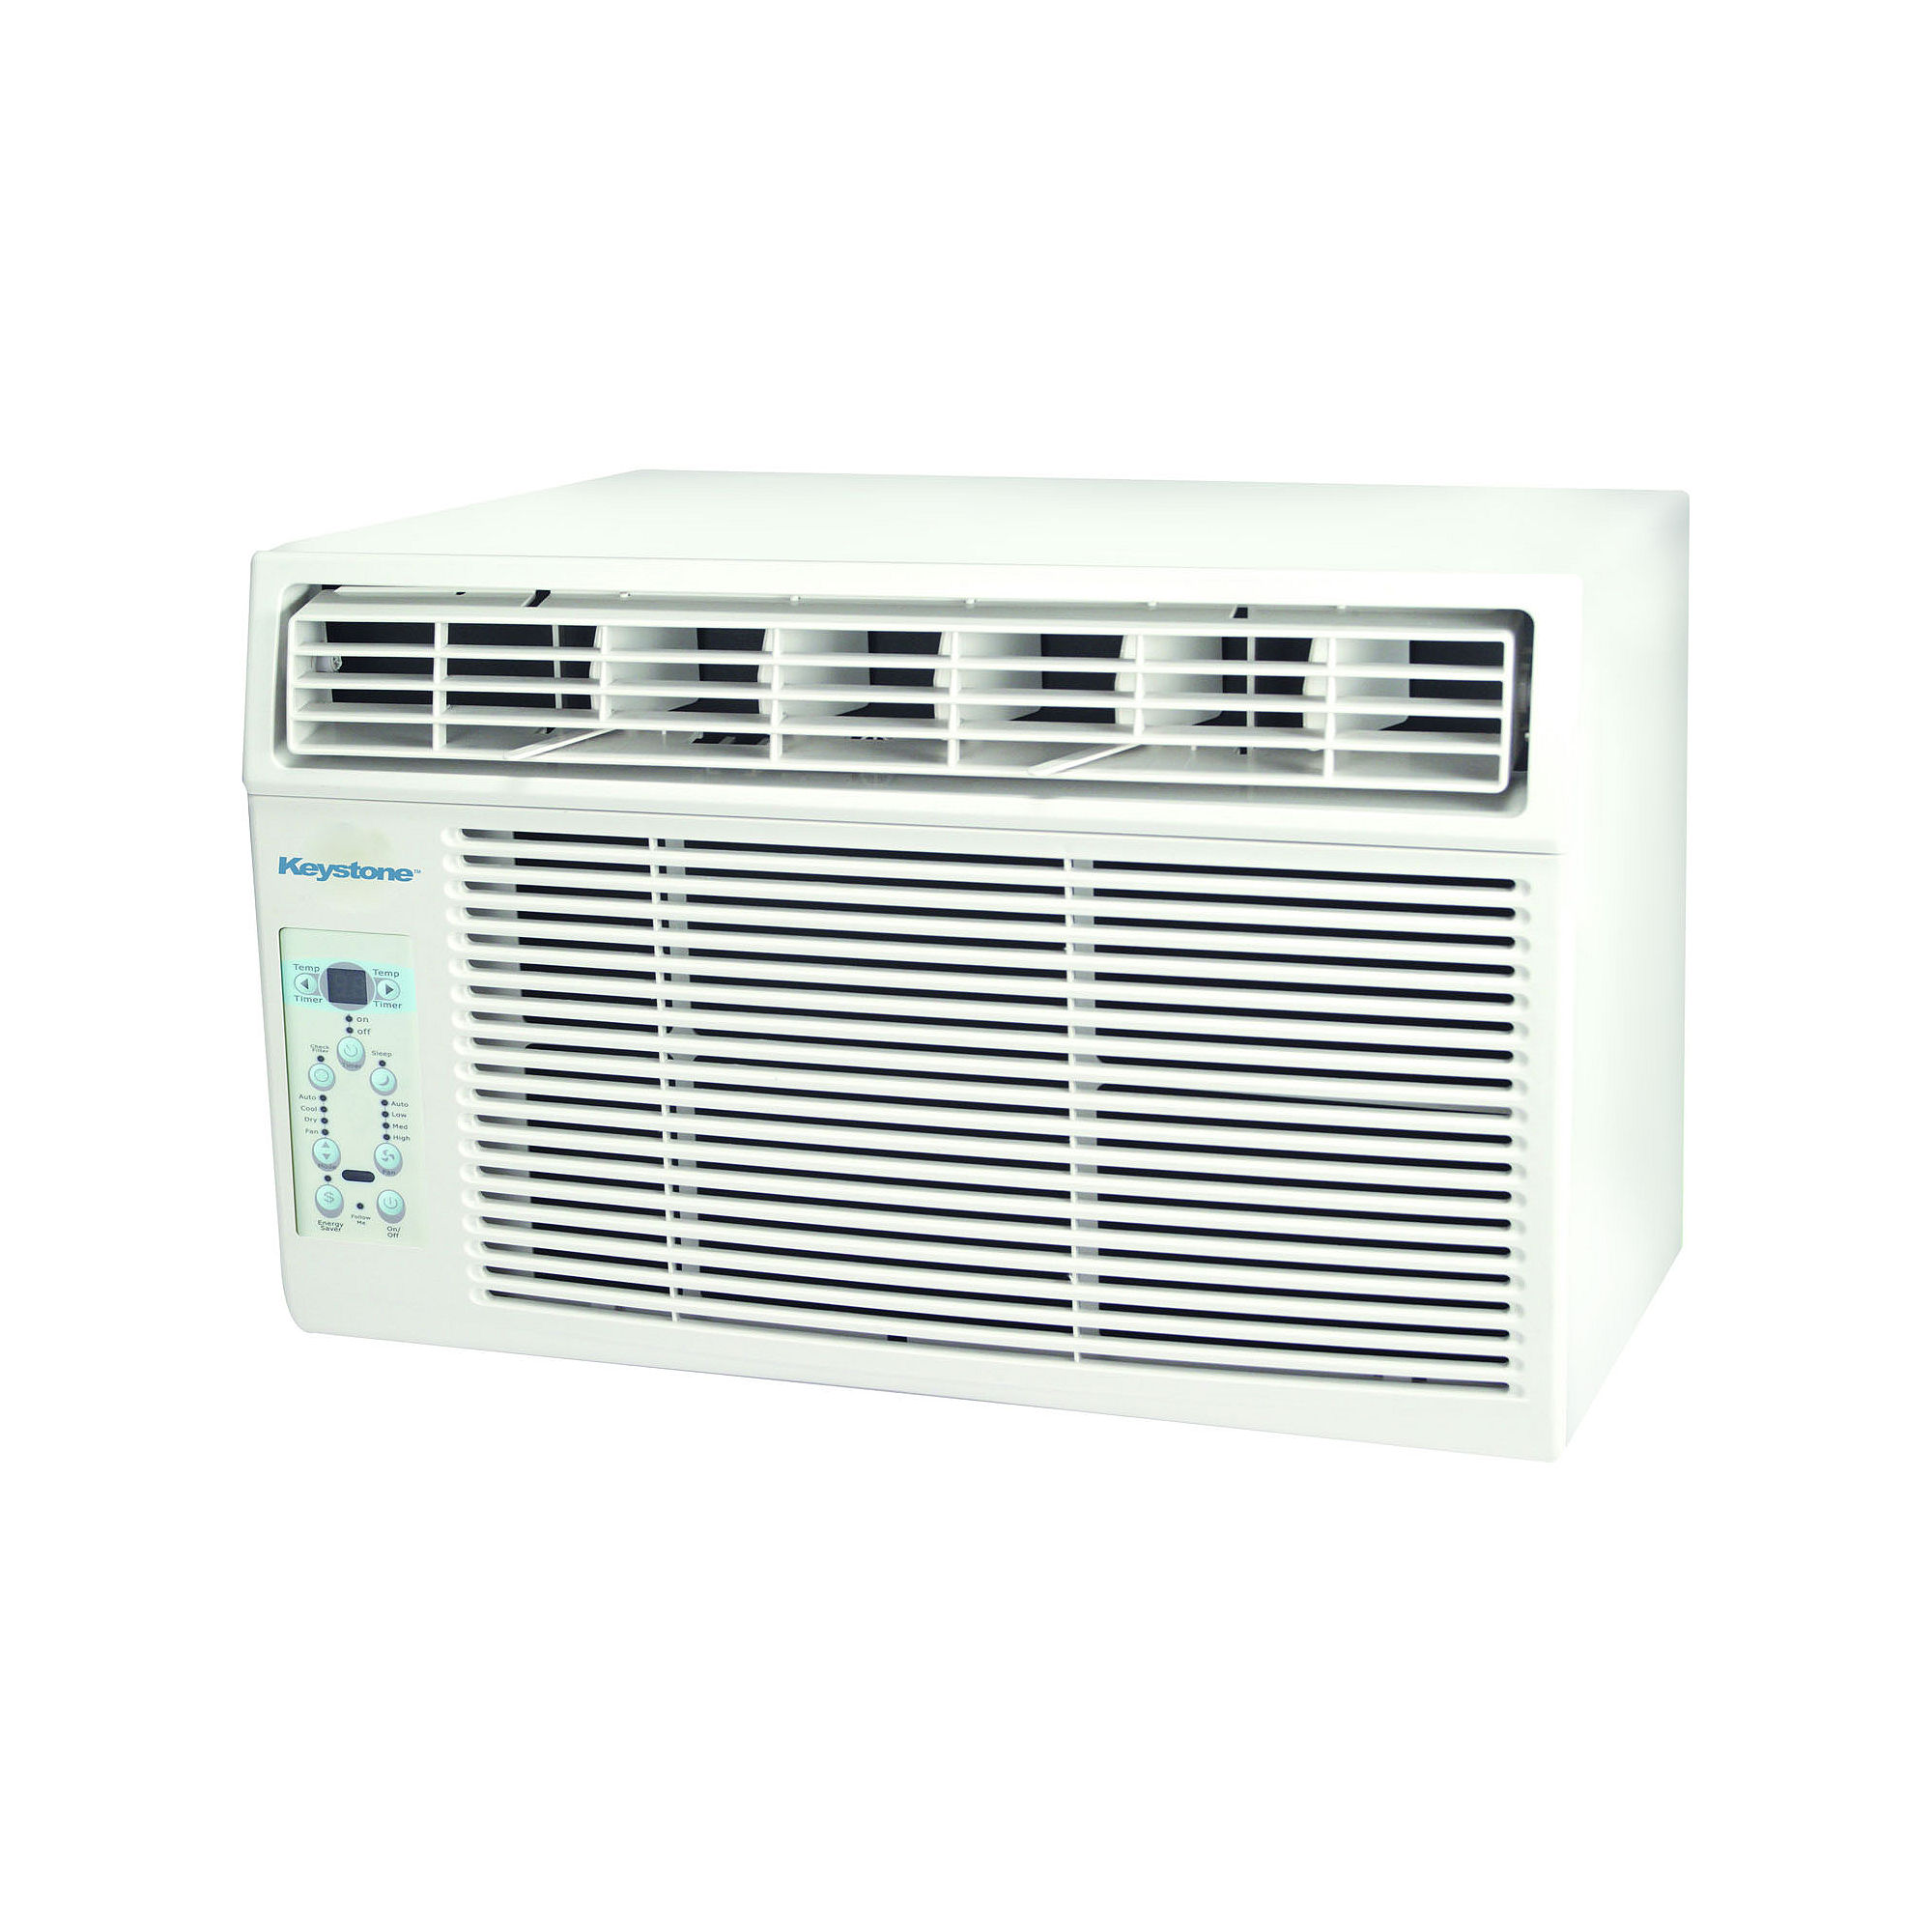 "Keystone 8000 BTU Window-Mounted Air Conditioner with ""Follow Me"" LCD Remote Control"""